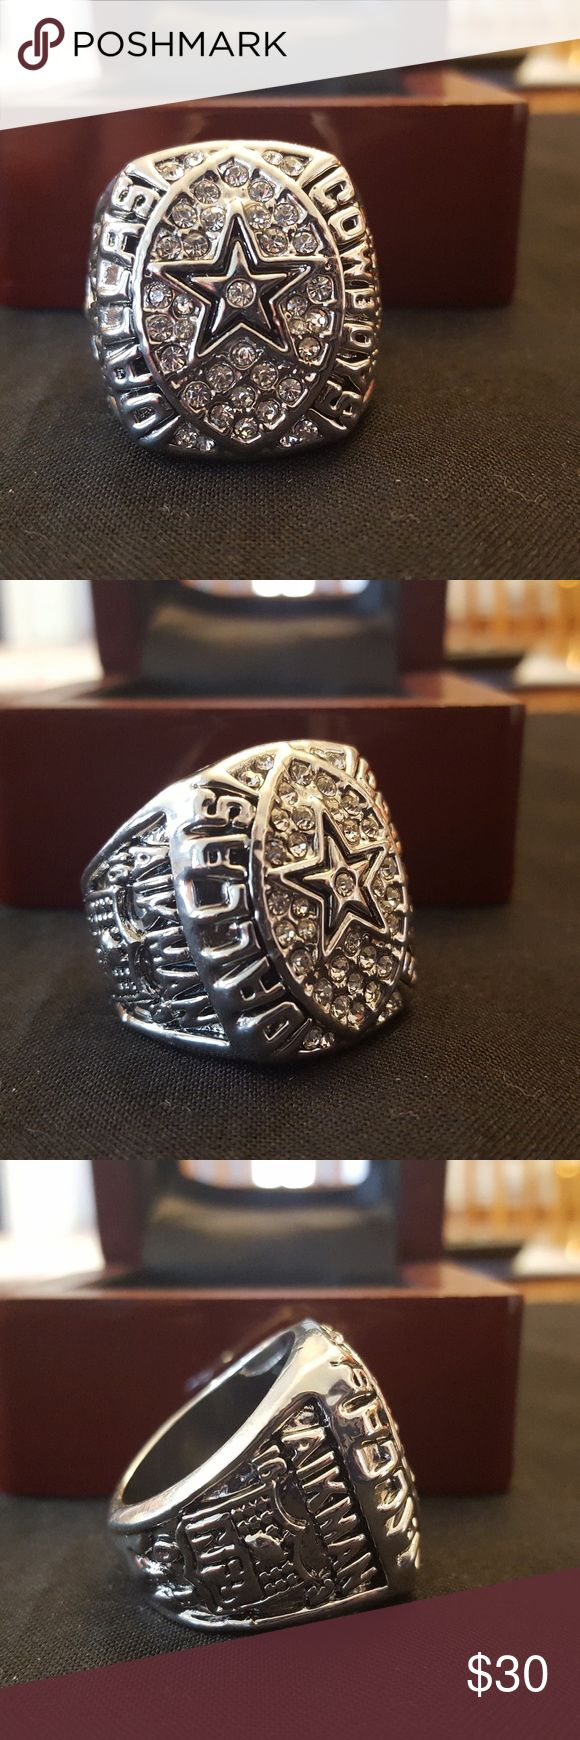 Dallas Cowboys 1992 Super Bowl Ring Fan Edition 🏆🏈🏆 New never worn. Sizes 11. Show the world your Cowboys pride by owning this beautiful ring and remember their 1992 Super Bowl Championship Ring . This gorgeous ring is 18k gold plated and inlayed with exquisite cubic zirconias. It will look great on your finger, at the game, while watching the game on tv, or around town. This is the closest thing to a real championship ring set that most of us will ever get to. Meet up in Red Oak…